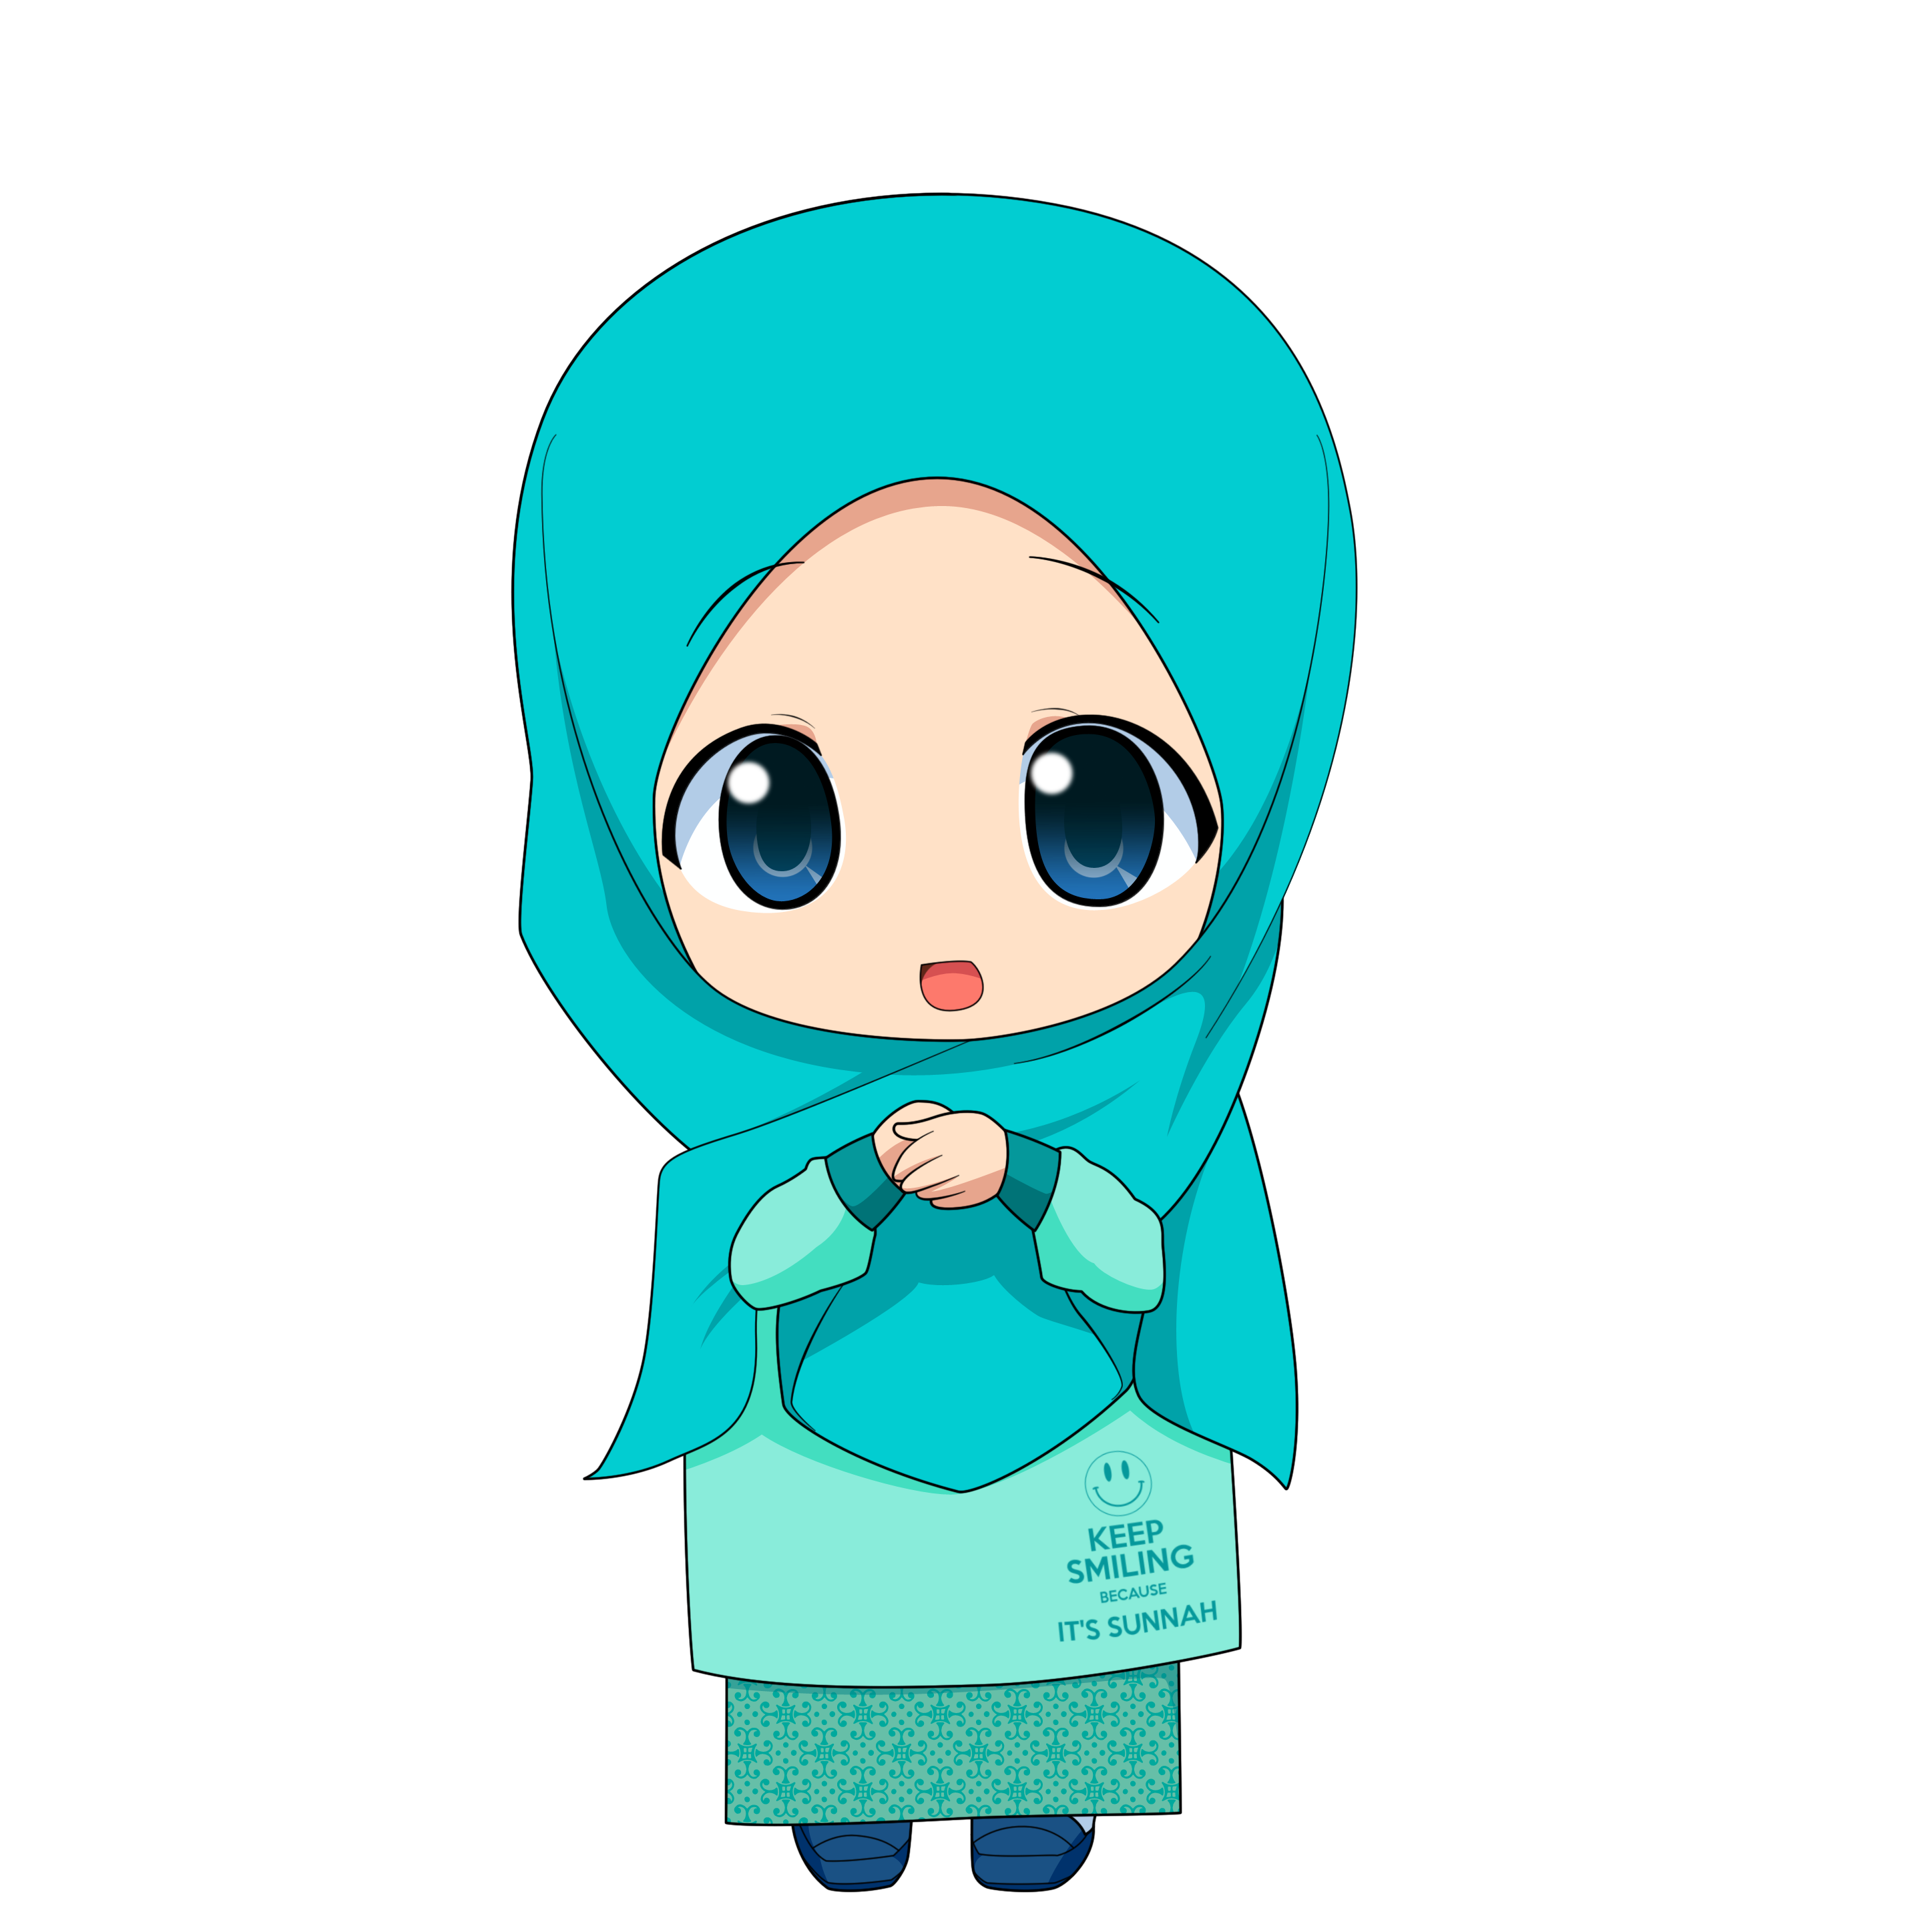 Kartun Muslimah Apple Macbook Transparent Png | Azhan.co